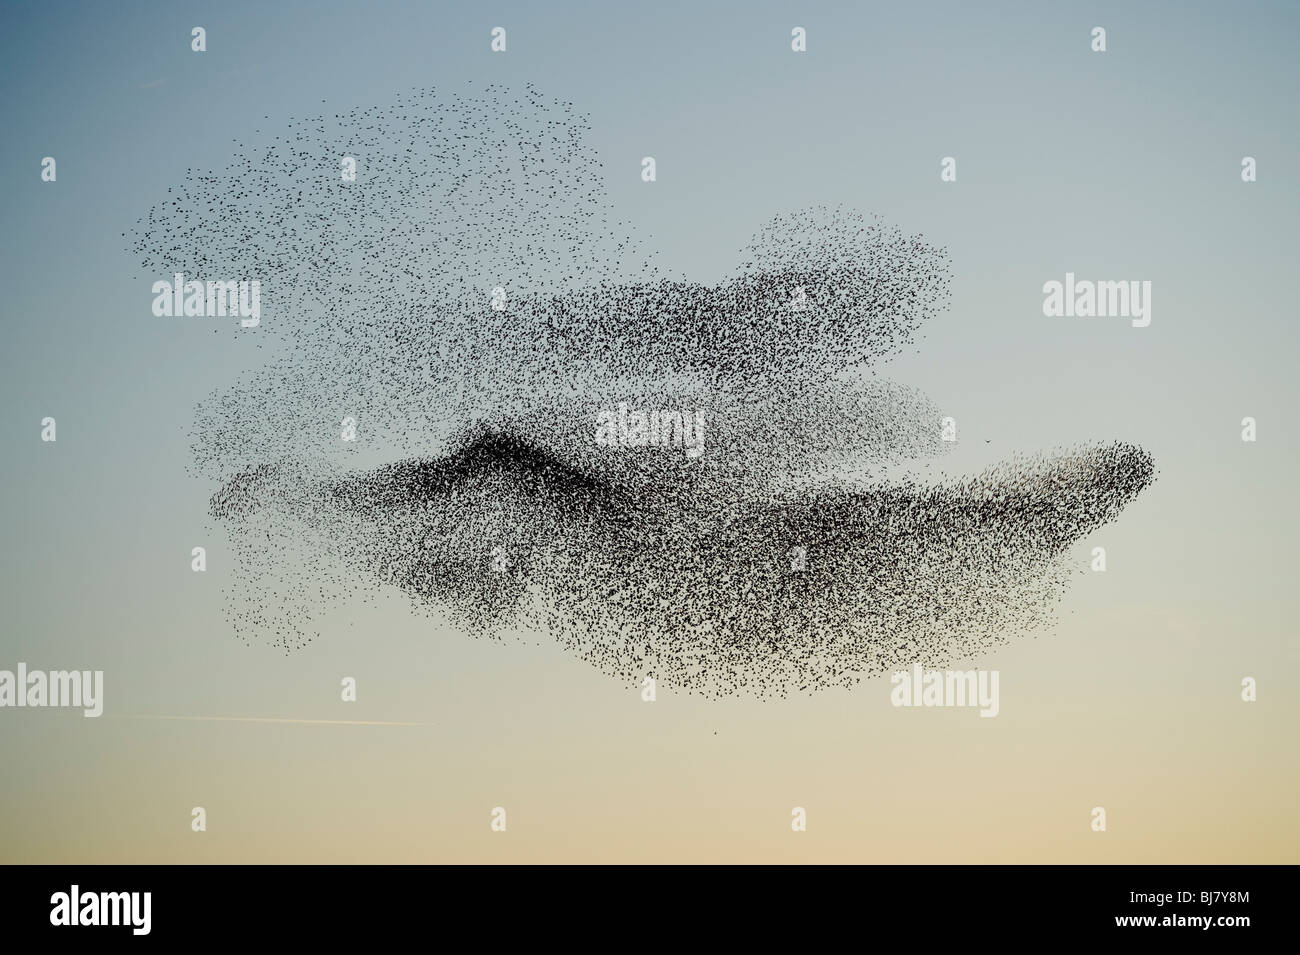 A flock of starlings (murmuration) flying at sunset, March evening, Wales UK - Stock Image